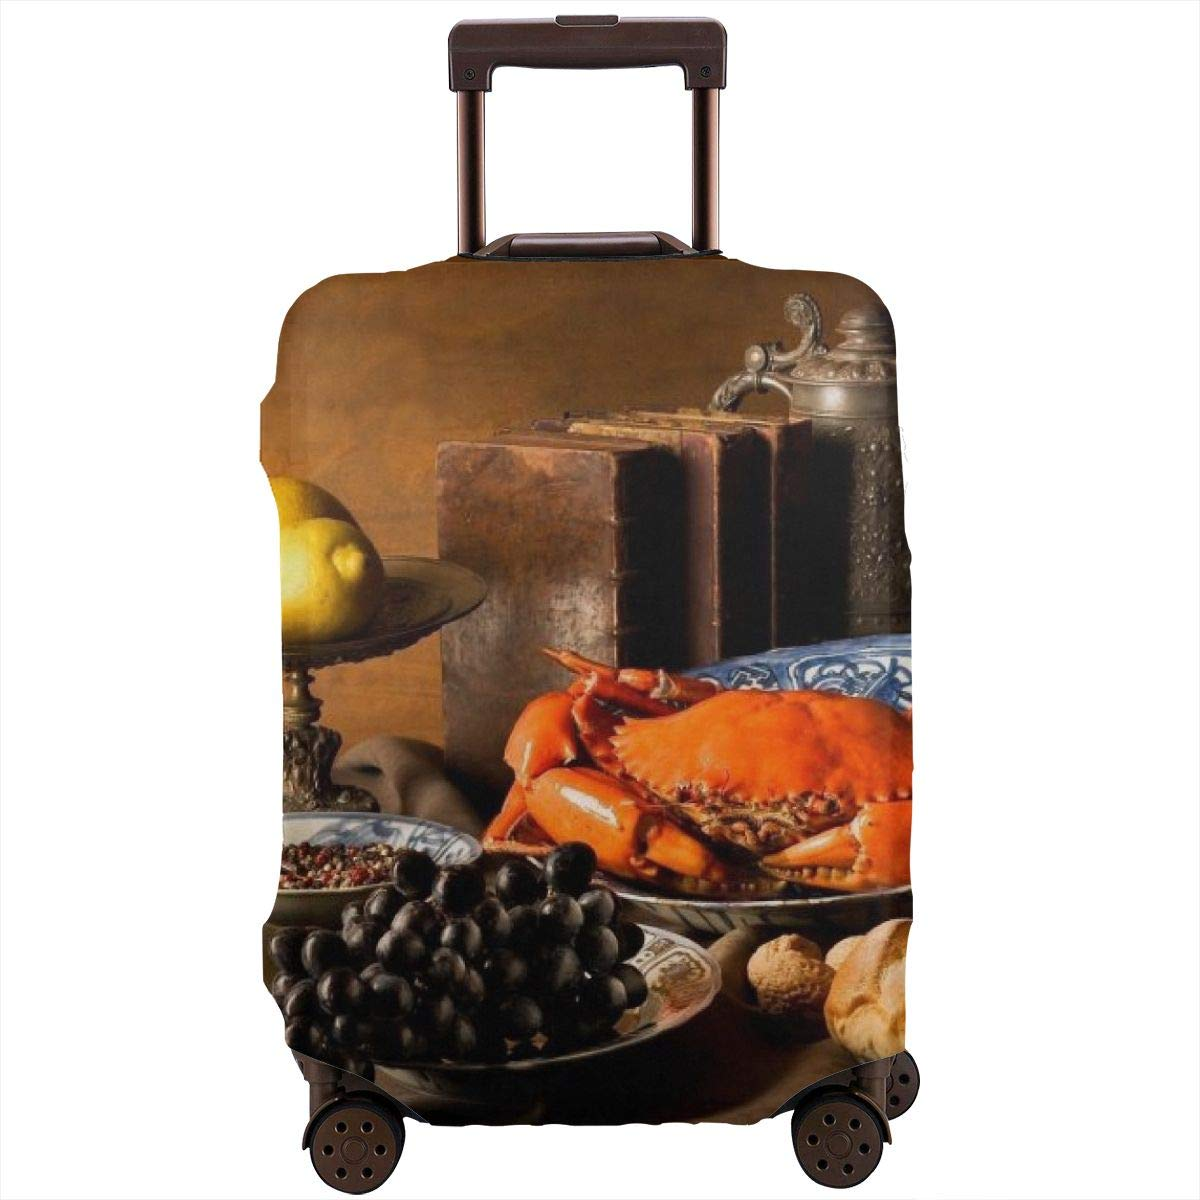 Yuotry Travel Luggage Cover Crab Meal with Wine Zipper Suitcase Protector Luggage with Fixed Buckle Fits 18-32 Inch Luggage XL